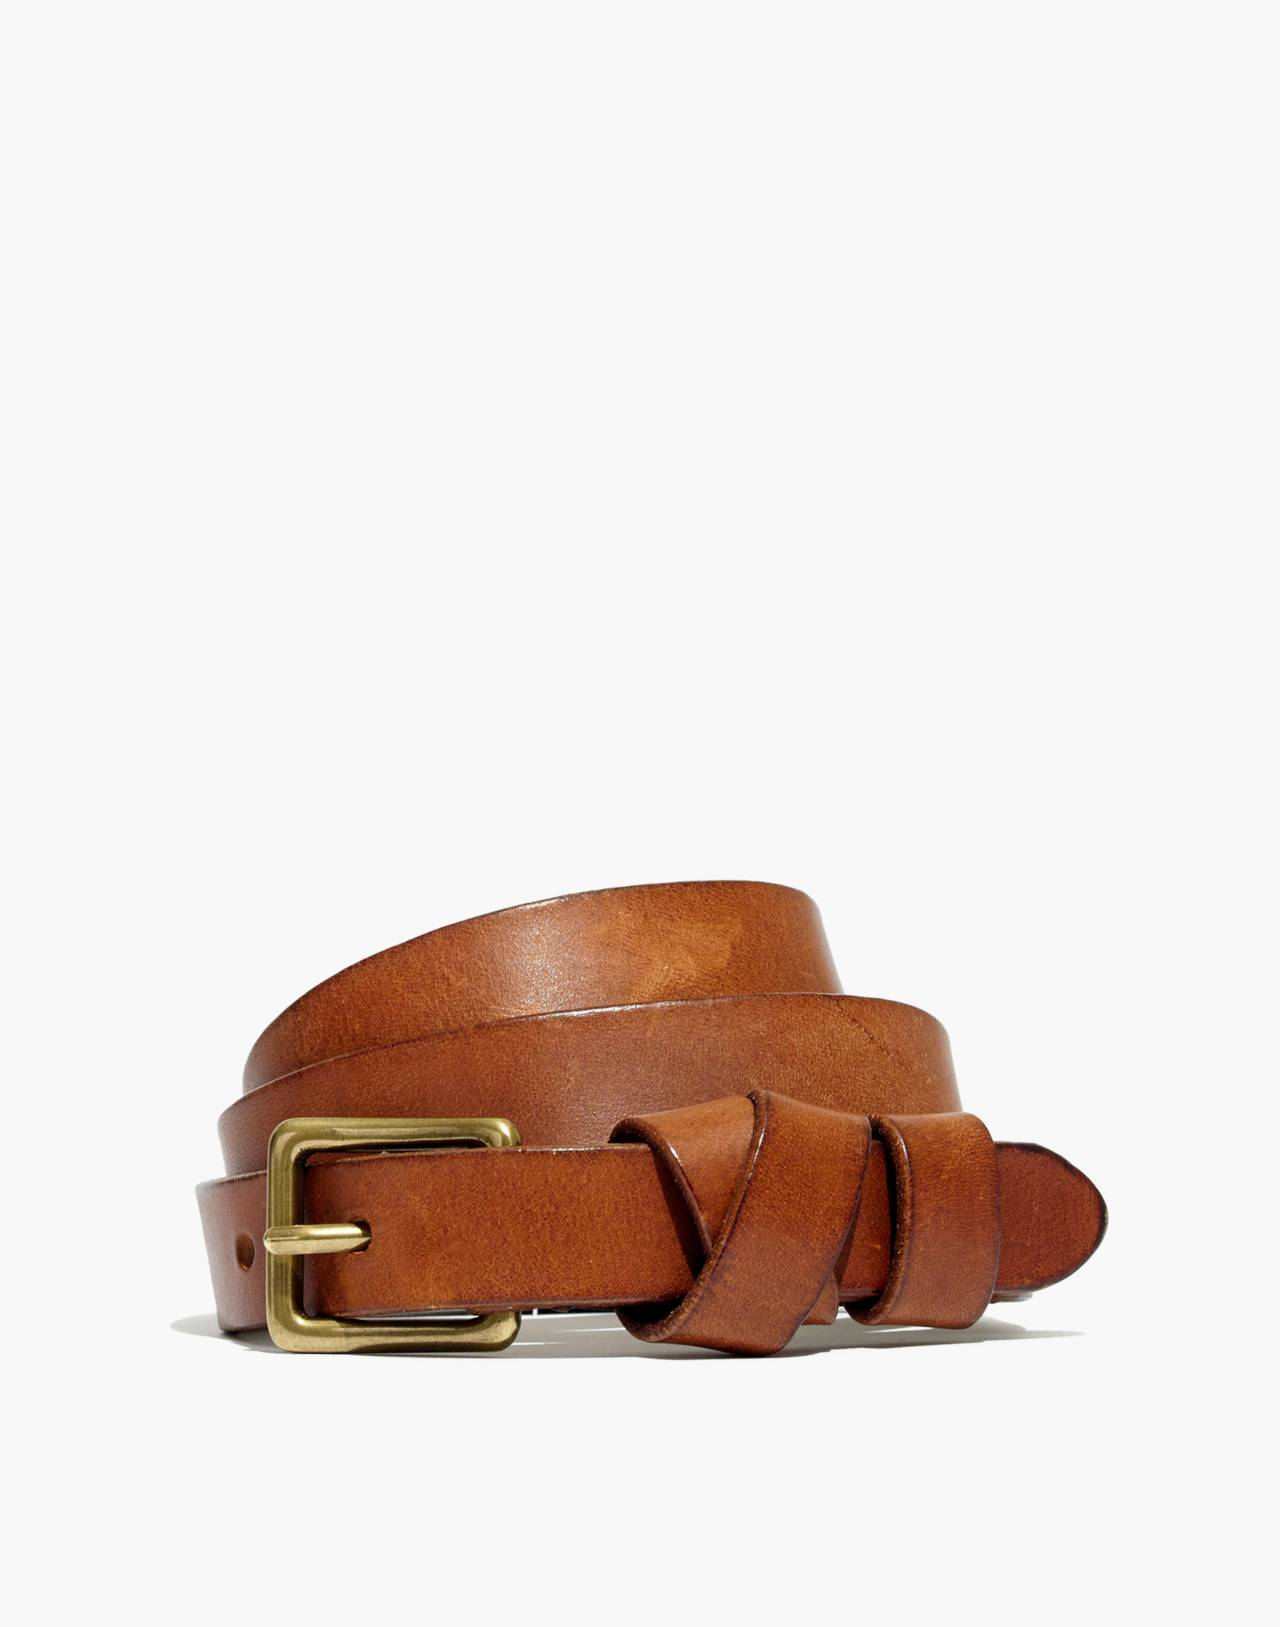 Leather Crisscross Skinny Belt in english saddle image 1